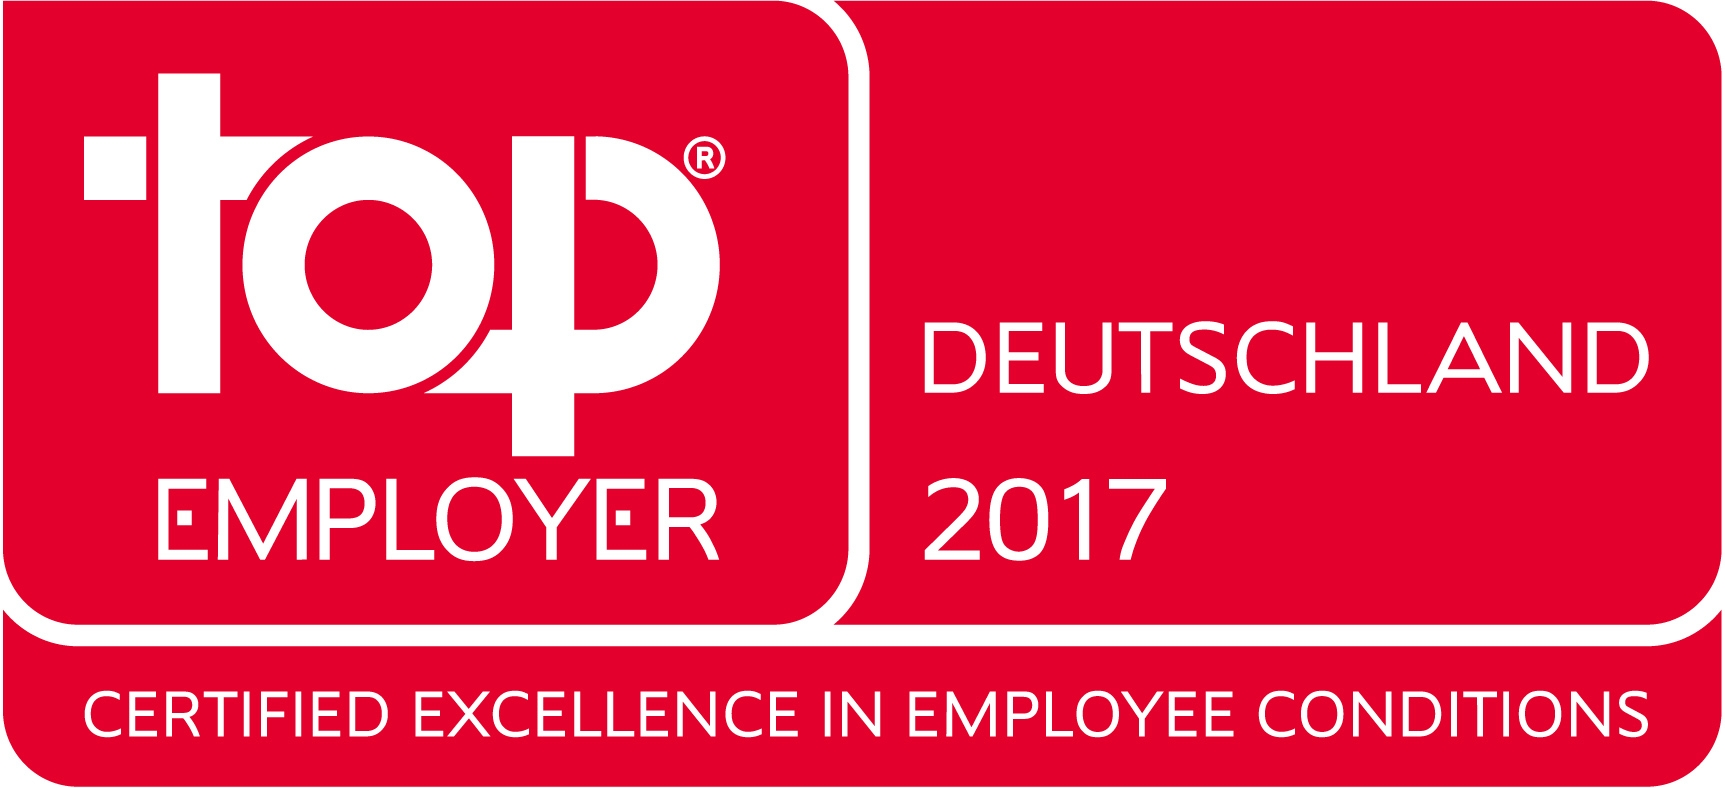 Top_Employer_Germany_2017.jpg